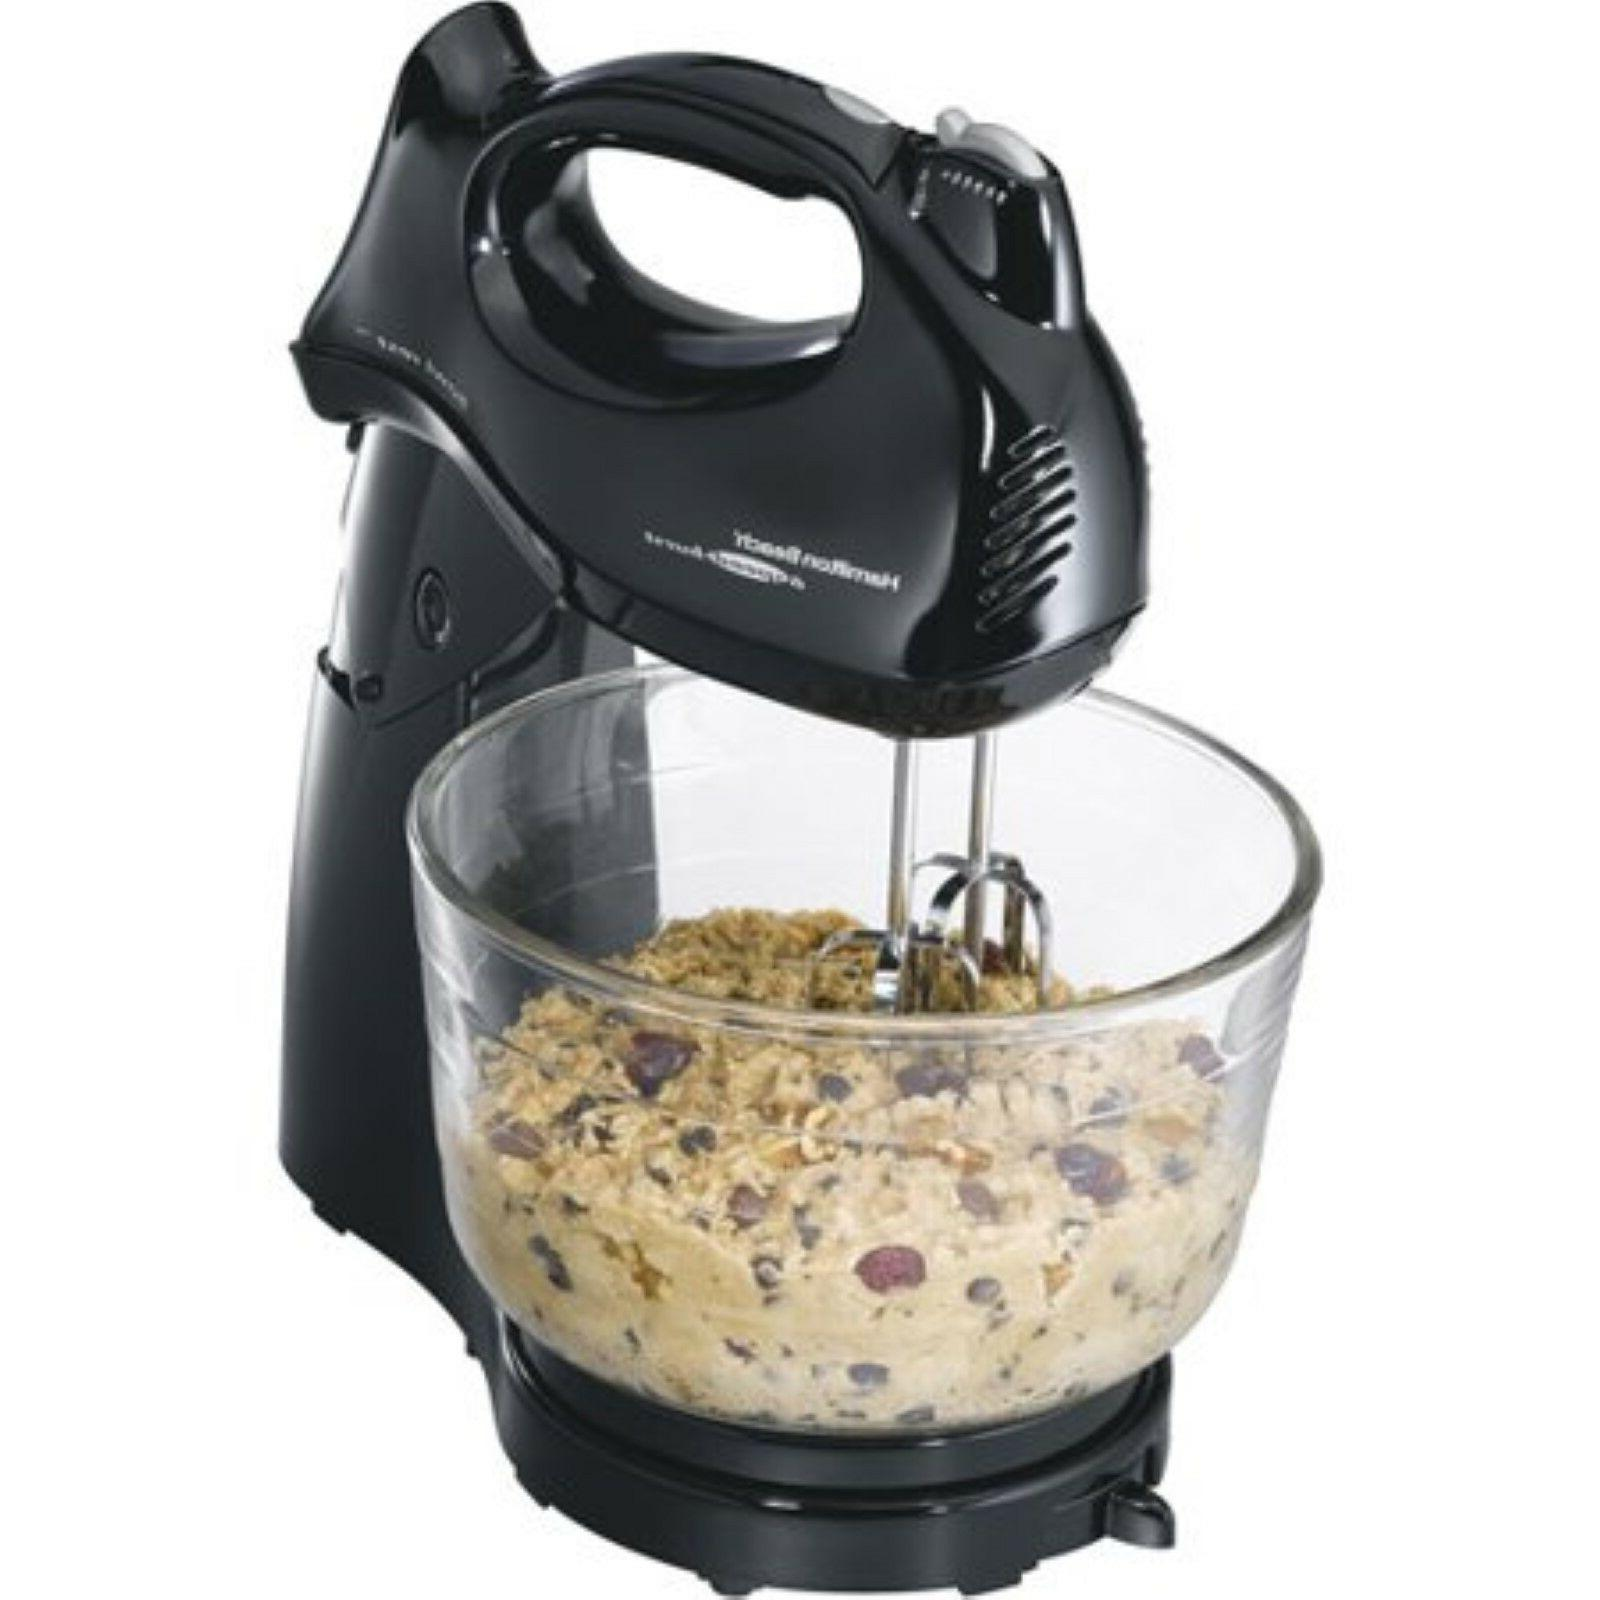 4 Qt Stand Mixer 6 Speed Power Deluxe Home Cook Kitchen Cook